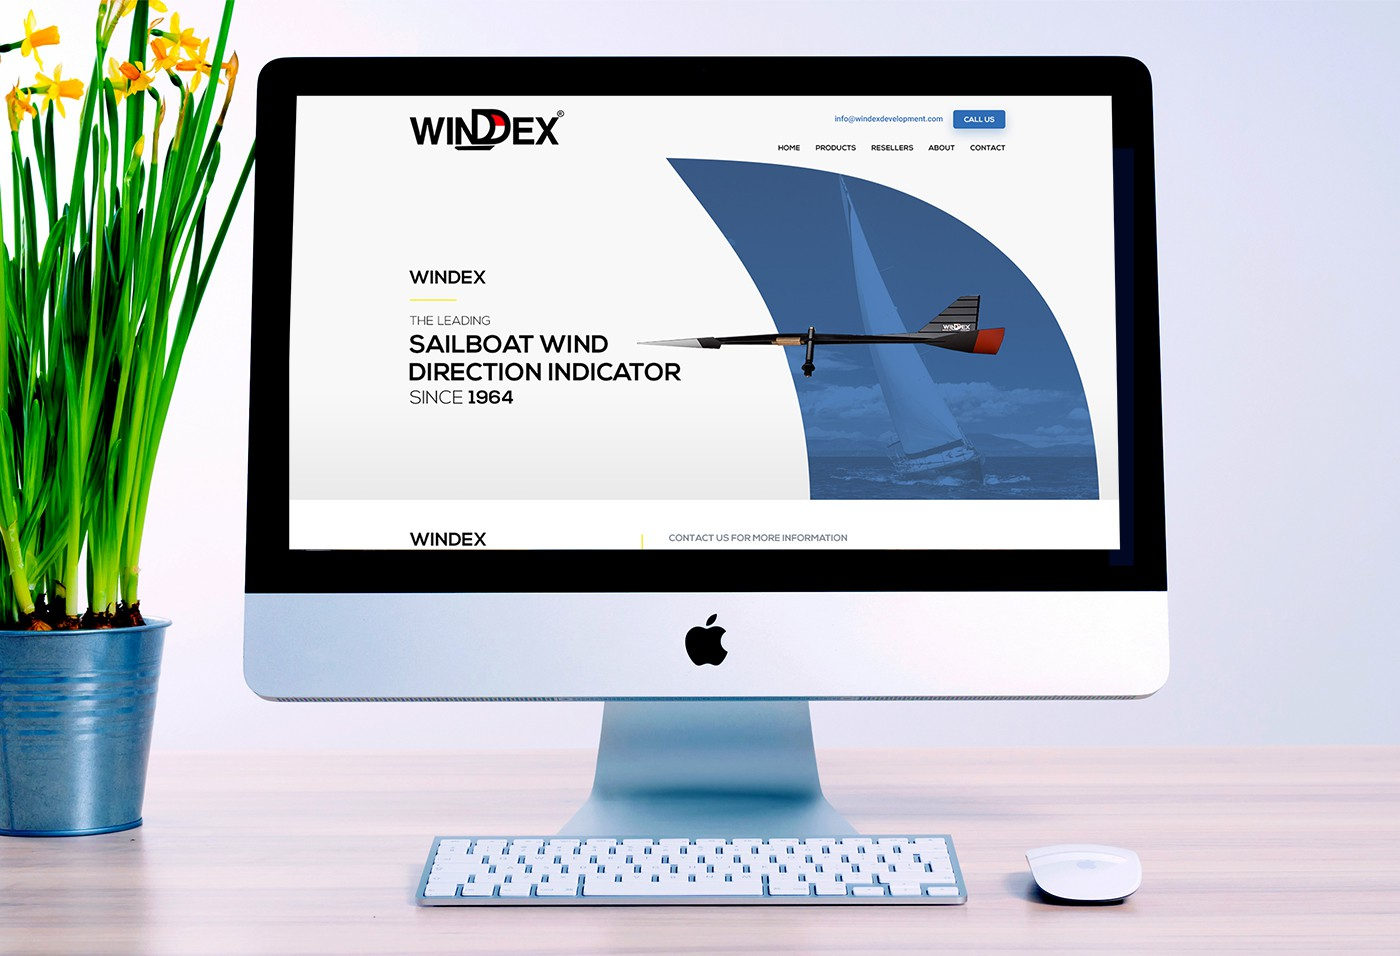 Windex: Design a  firstpage  based on brand guidlines